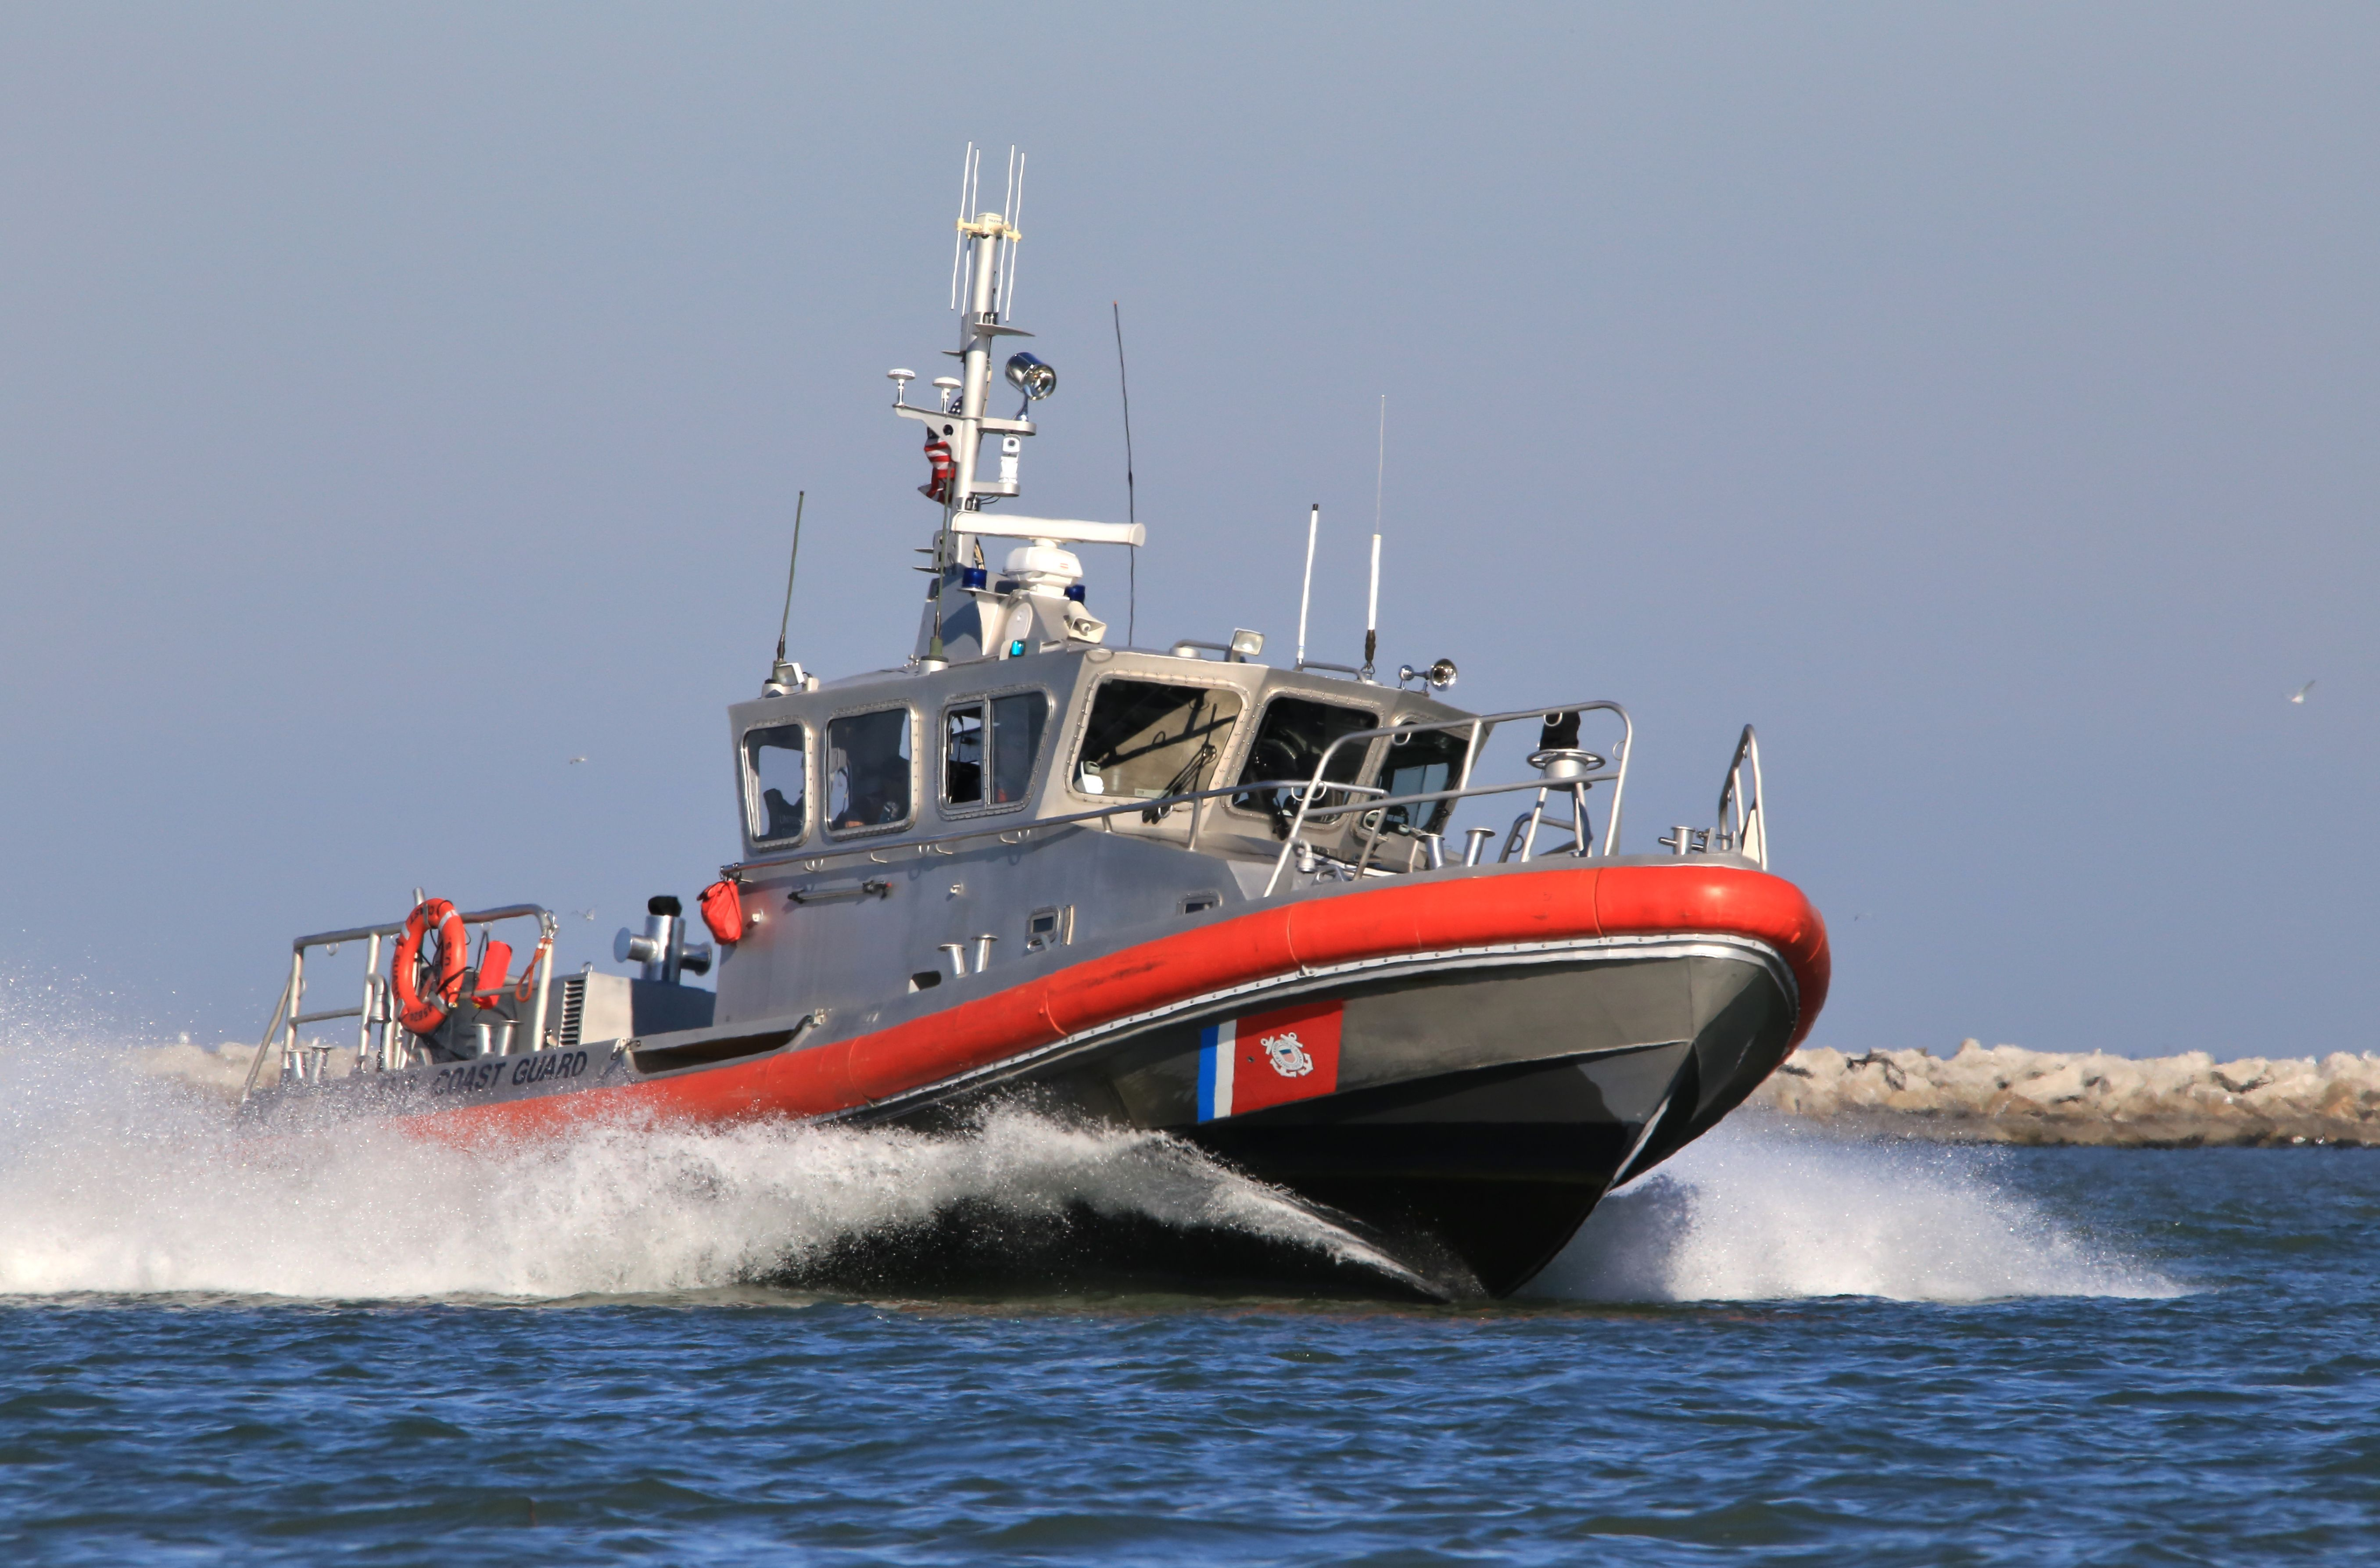 Coast Guard Safety Requirements For Boats 16 26 Feet